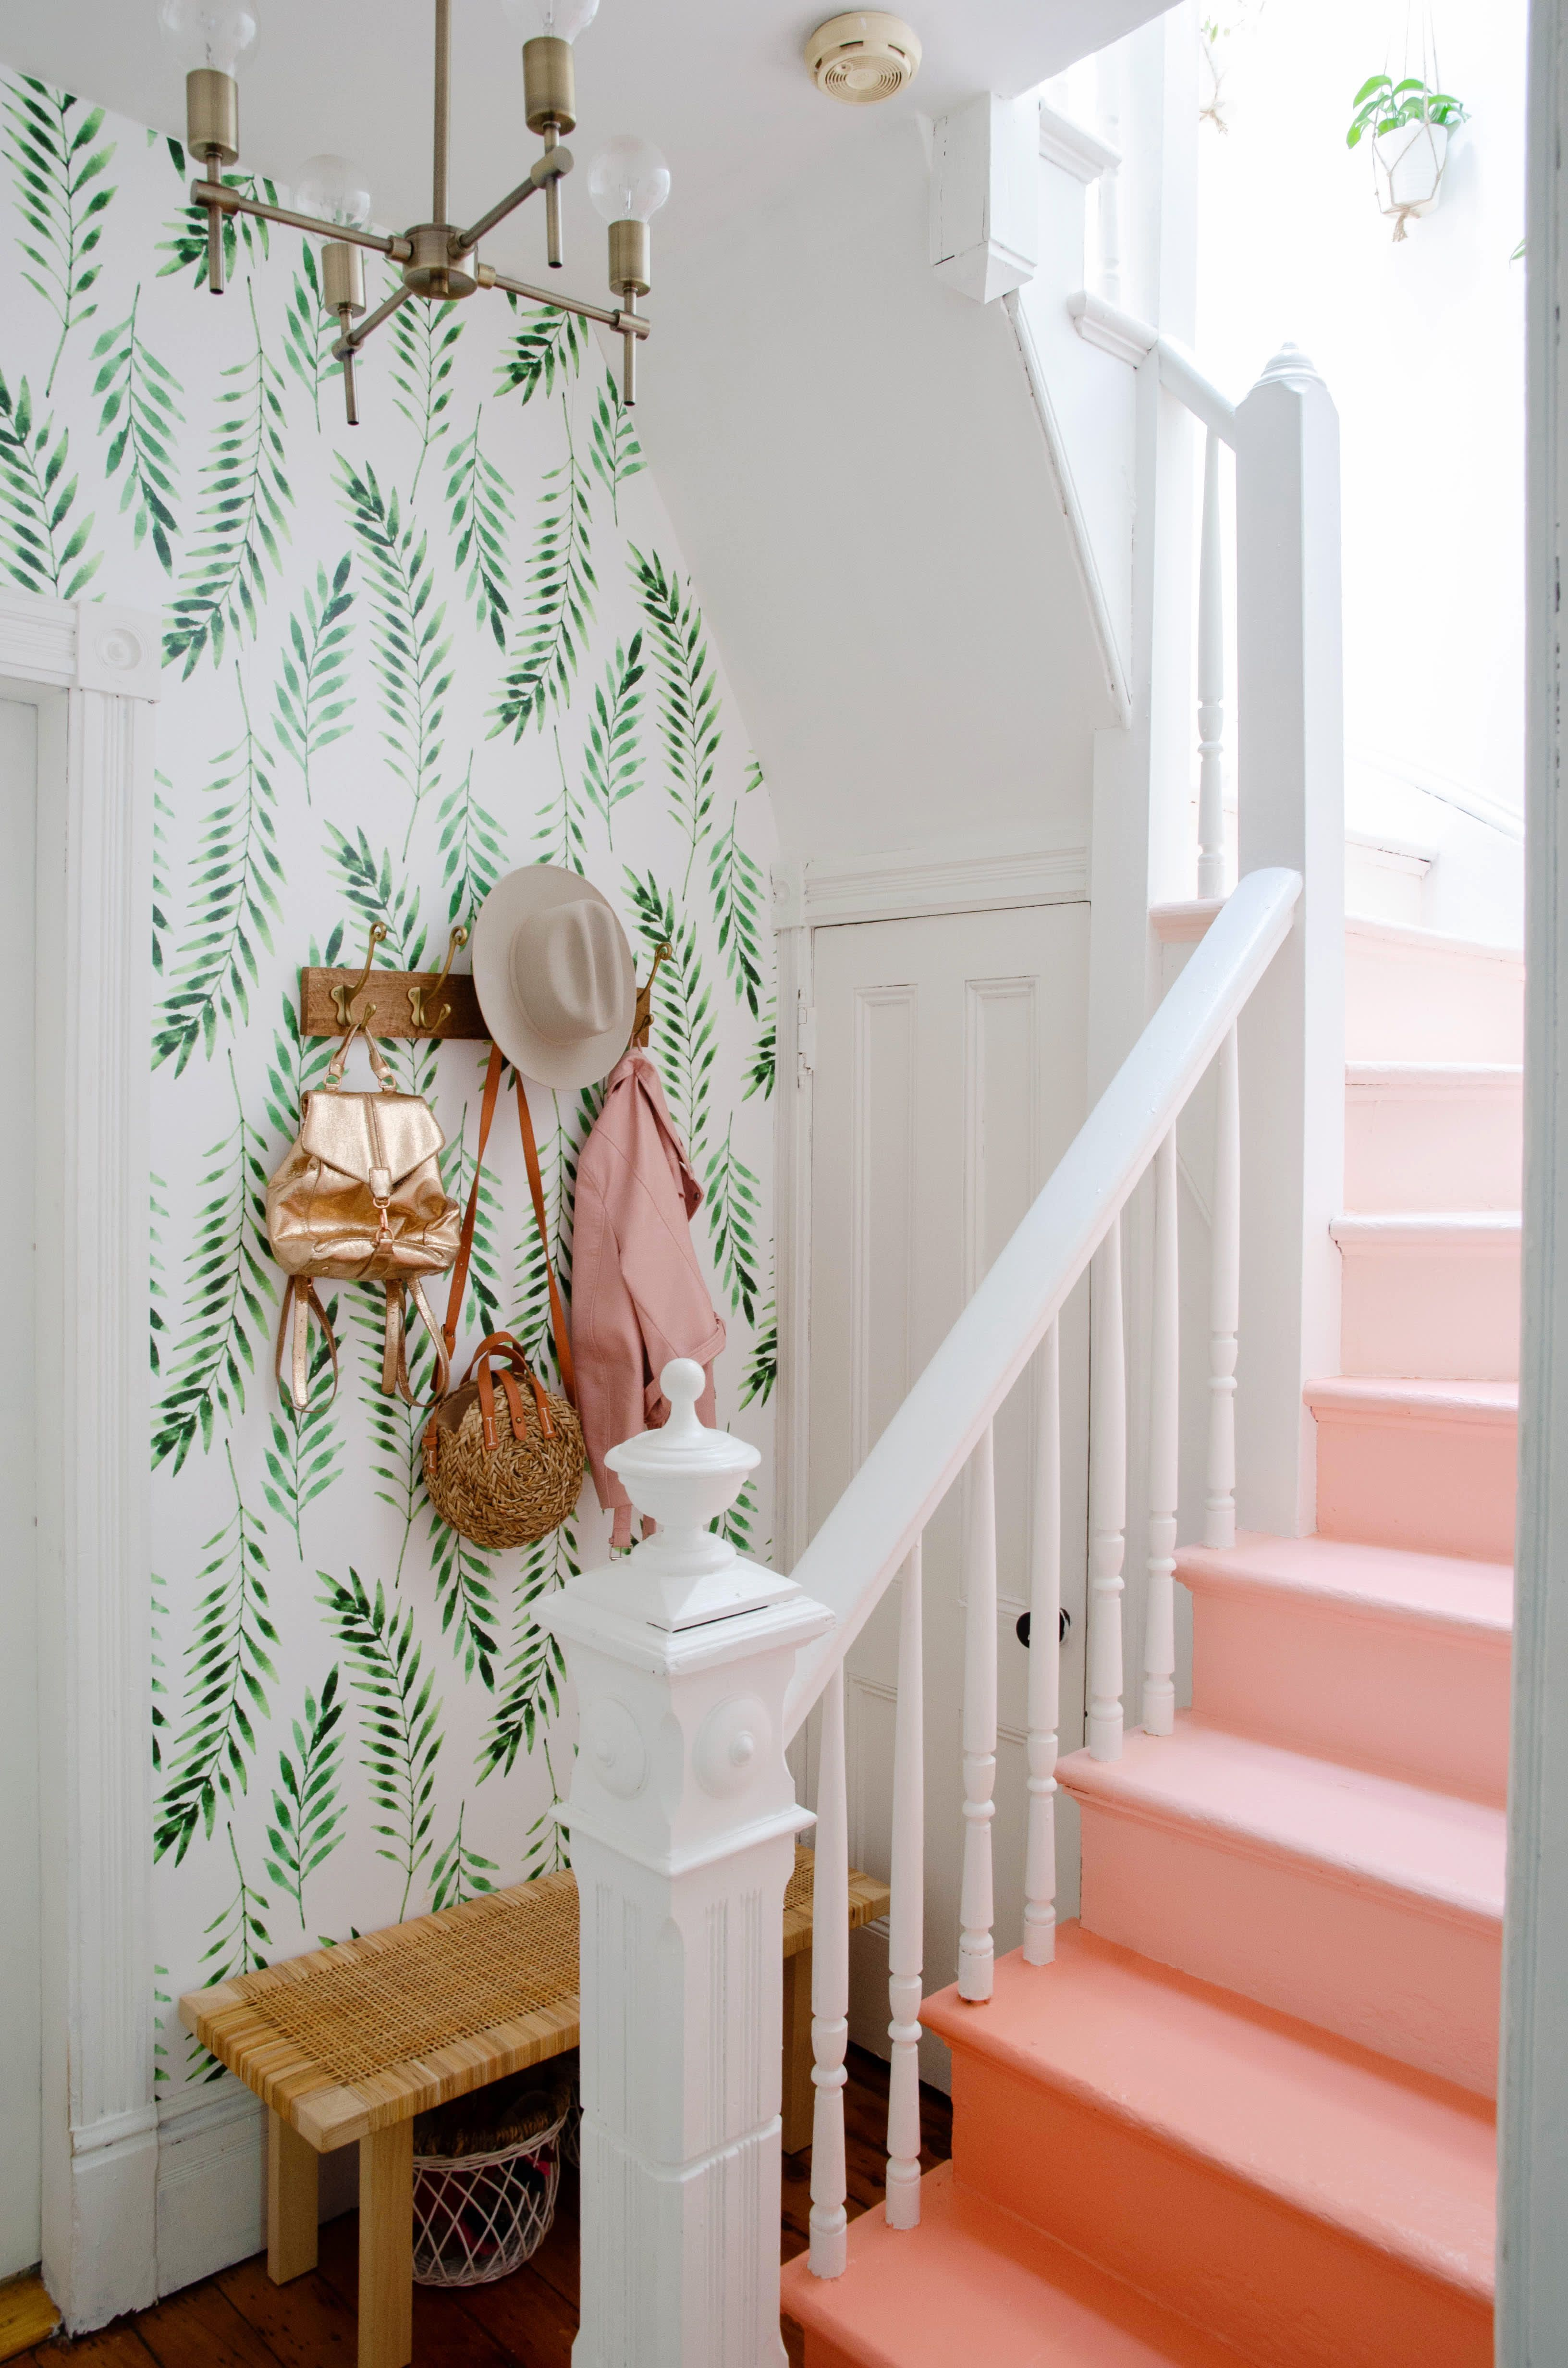 home decor 2018 #homedecor Natalie used four different Benjamin Moore colors to paint the staircase in this ombre pattern. The wallpaper is from Boho Walls.